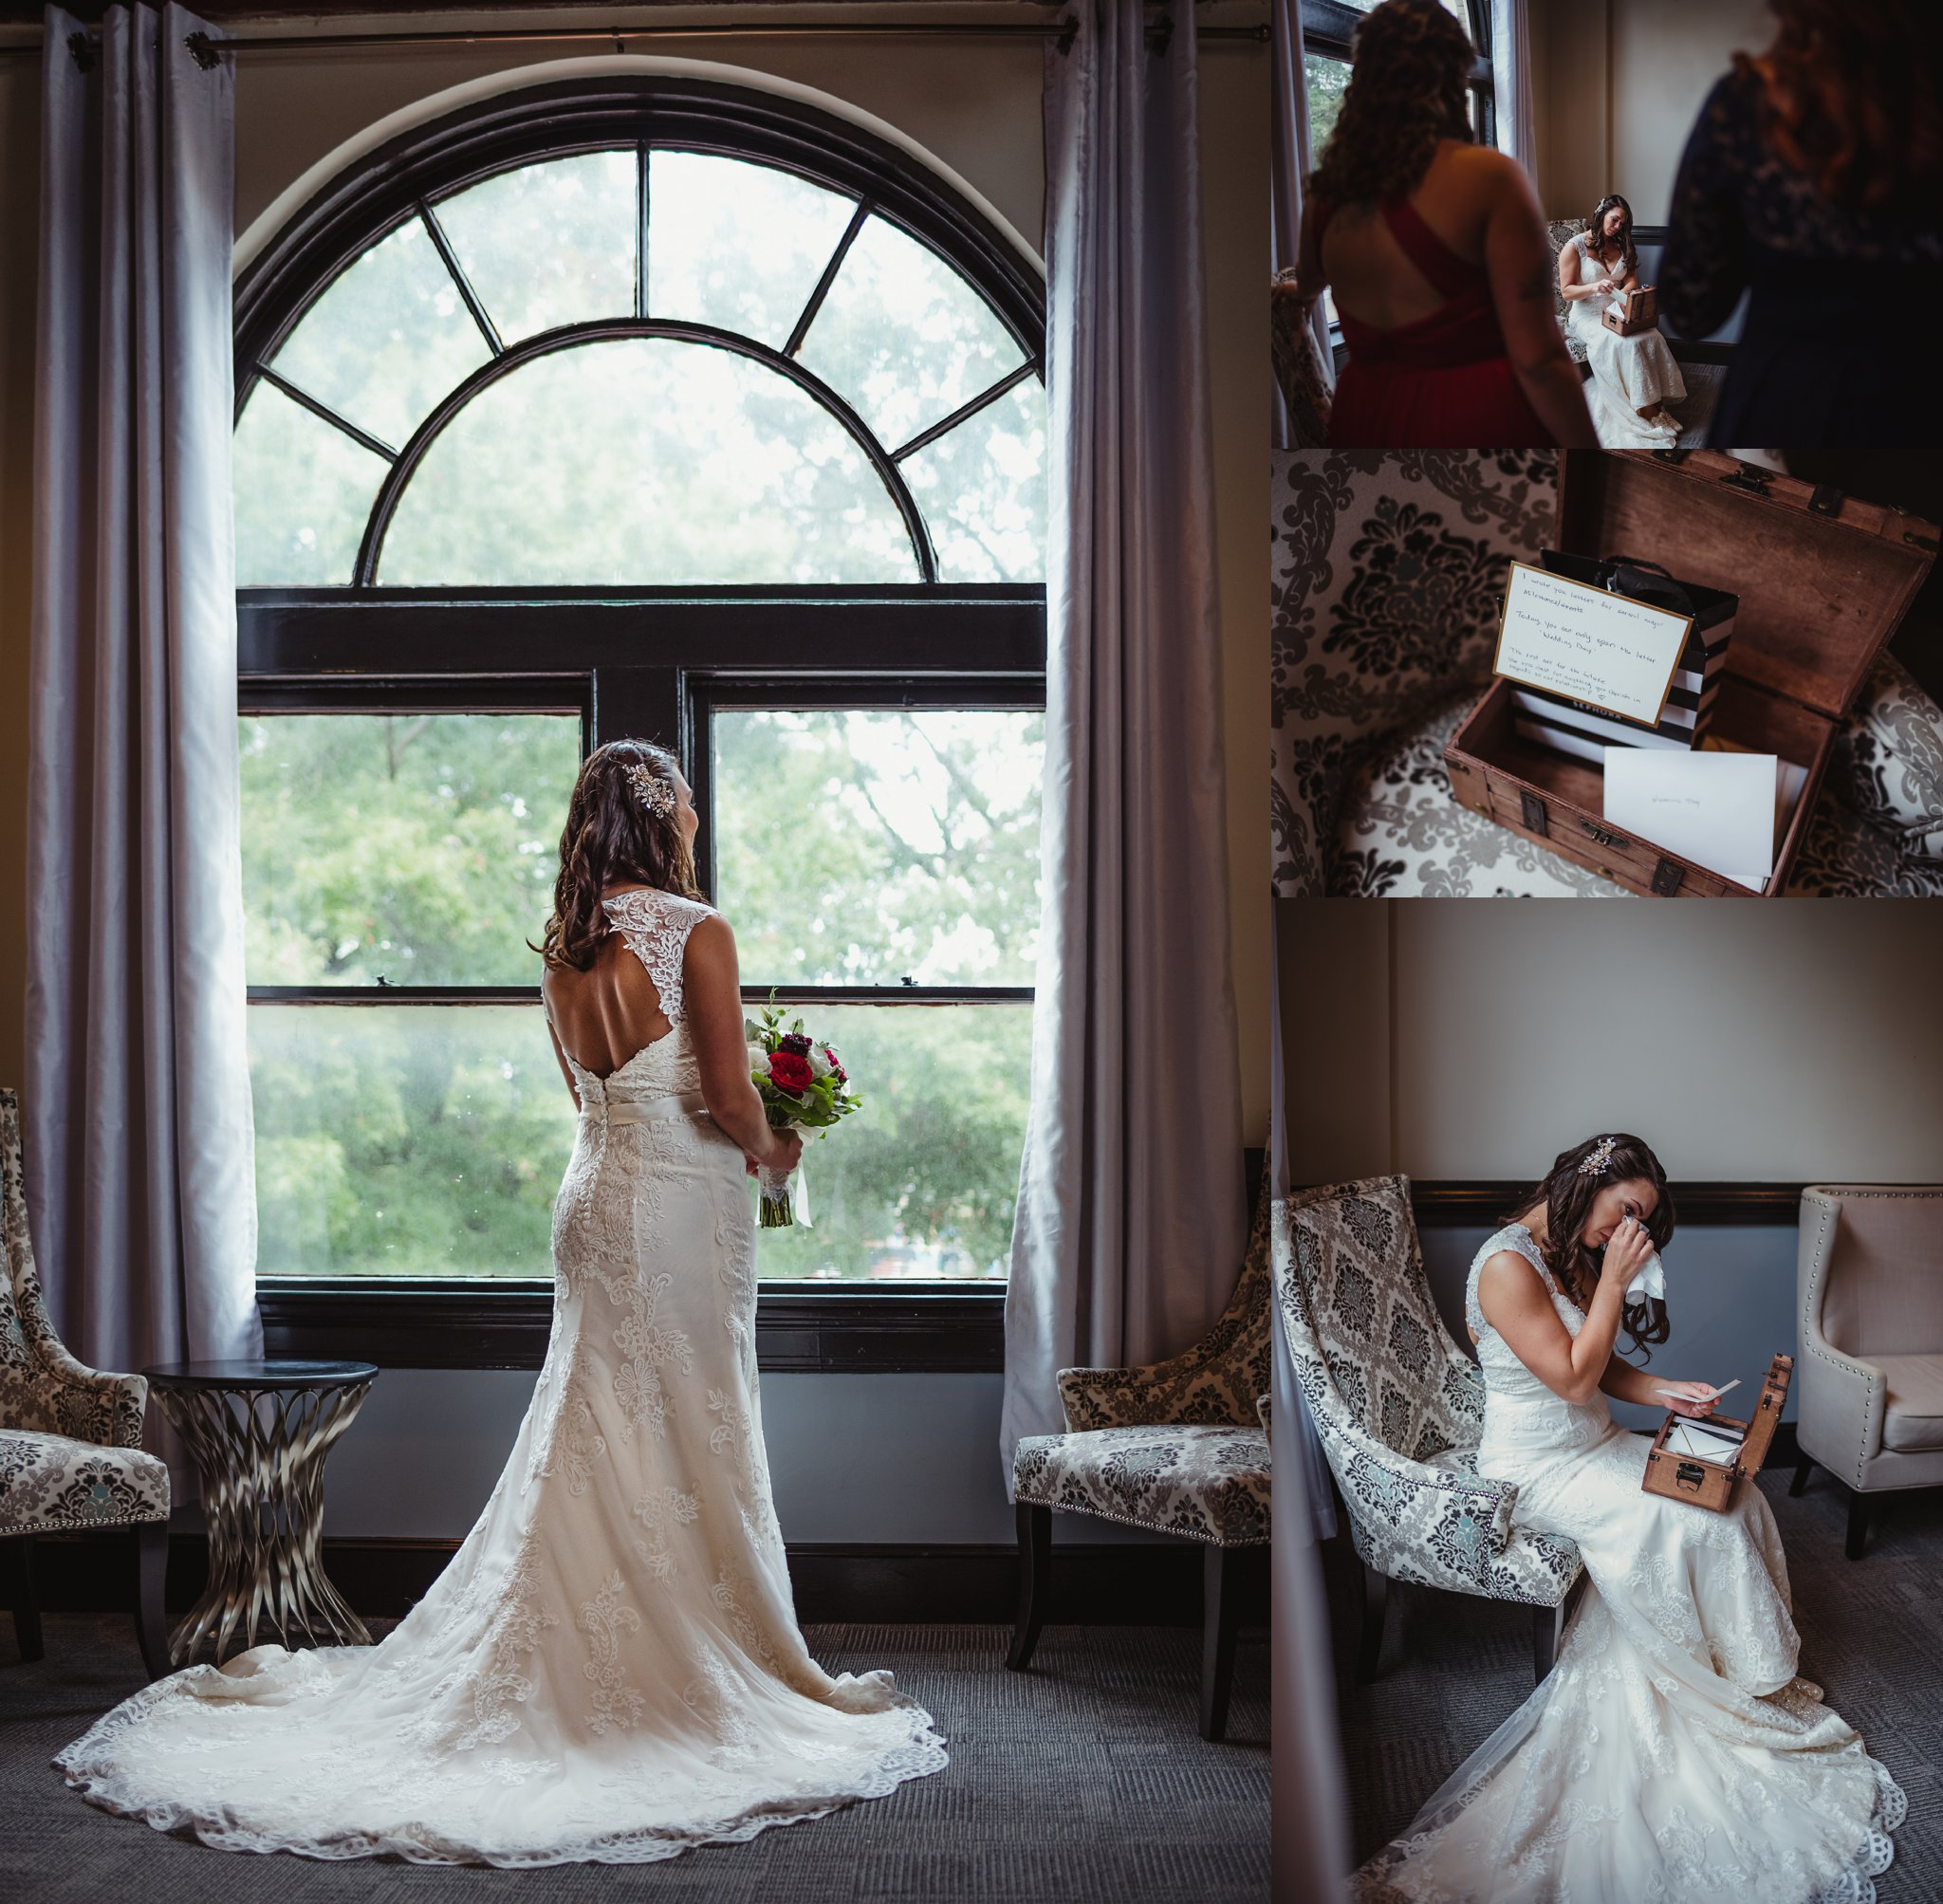 The bride took portraits and read notes from her groom before her wedding ceremony  in downtown Raleigh, photos by Rose Trail Images.